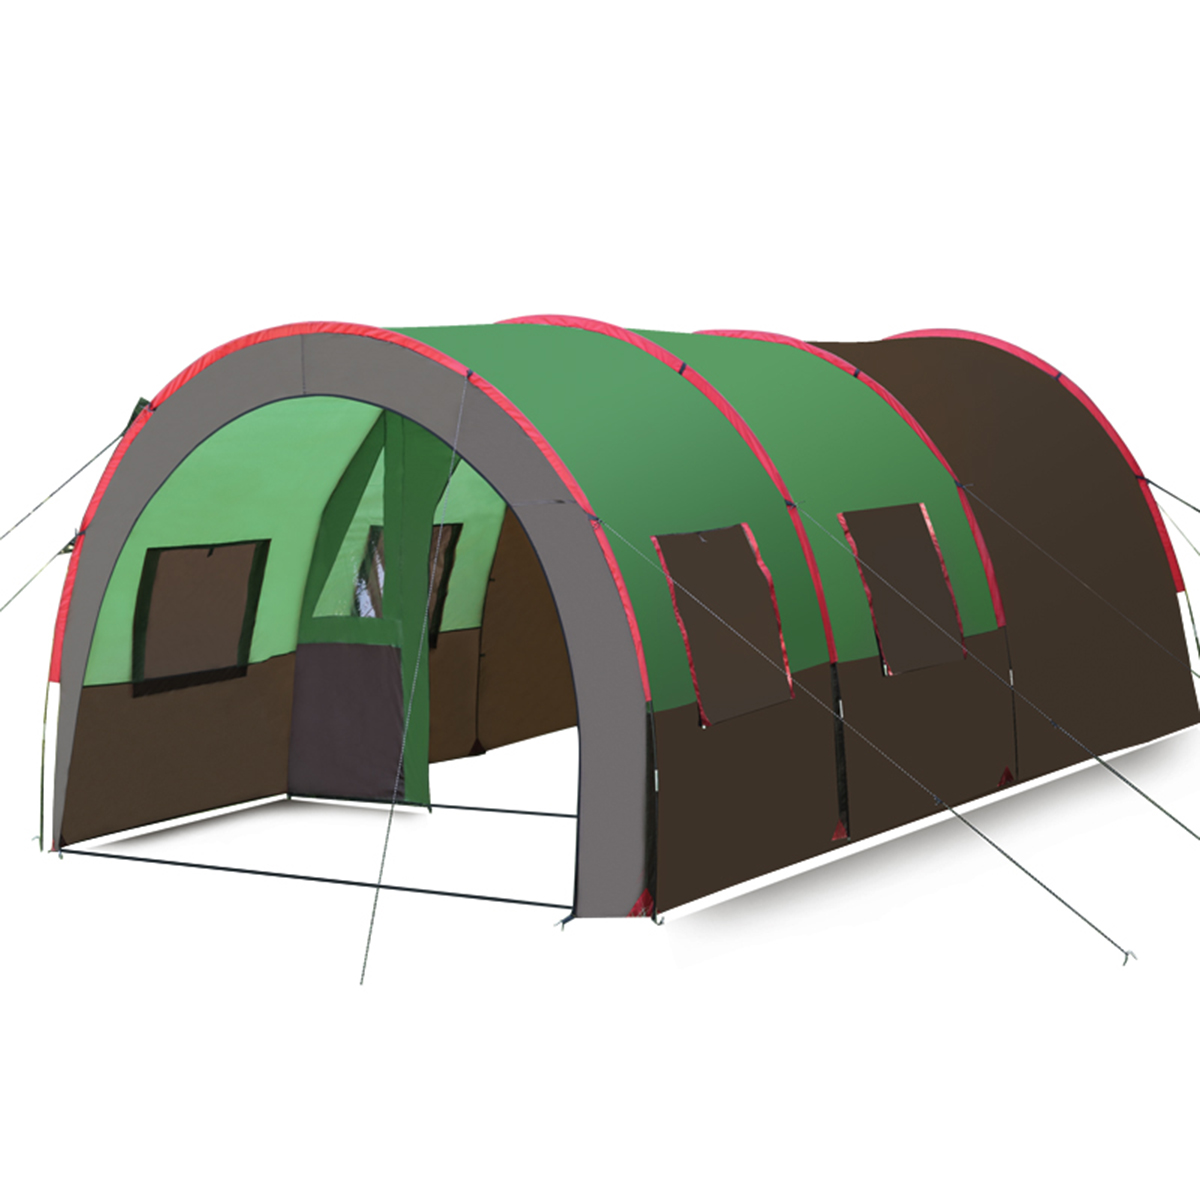 Outdoor Tents 8-10 Person One Room Two Hall Large Camping Waterproof Family Tent Fully Sun Shelter Gazebo Party Camping Hiking alltel high quality double layer ultralarge 4 8person family party gardon beach camping tent gazebo sun shelter